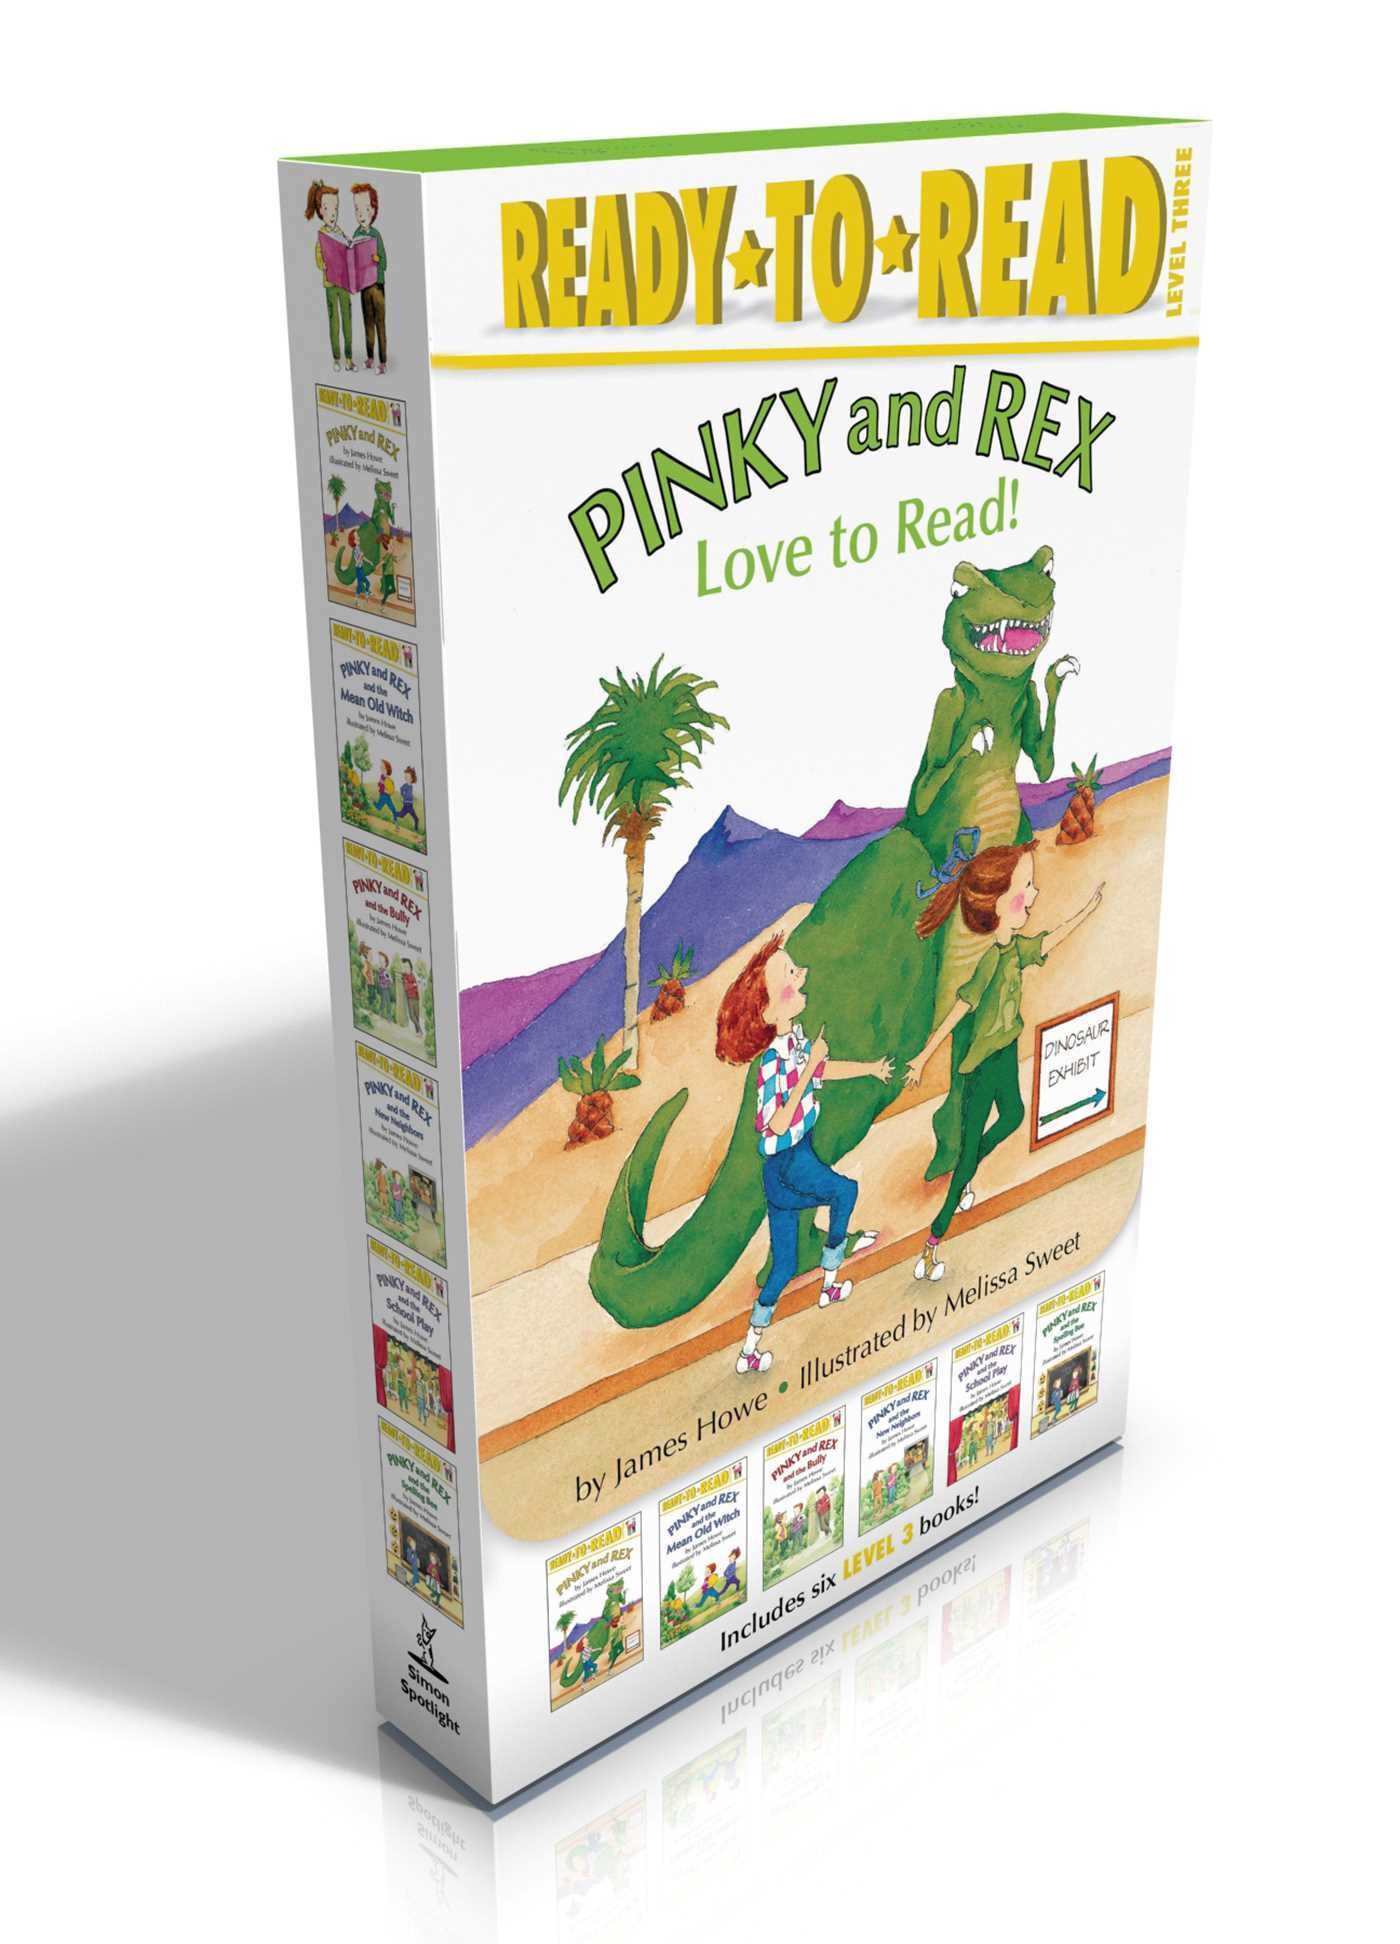 Pinky and Rex Love to Read!: Pinky and Rex; Pinky and Rex and the Mean Old Witch; Pinky and Rex and the Bully; Pinky and Rex and the New Neighbors; Pinky and Rex and the School Play; Pinky and Rex and the Spelling Bee